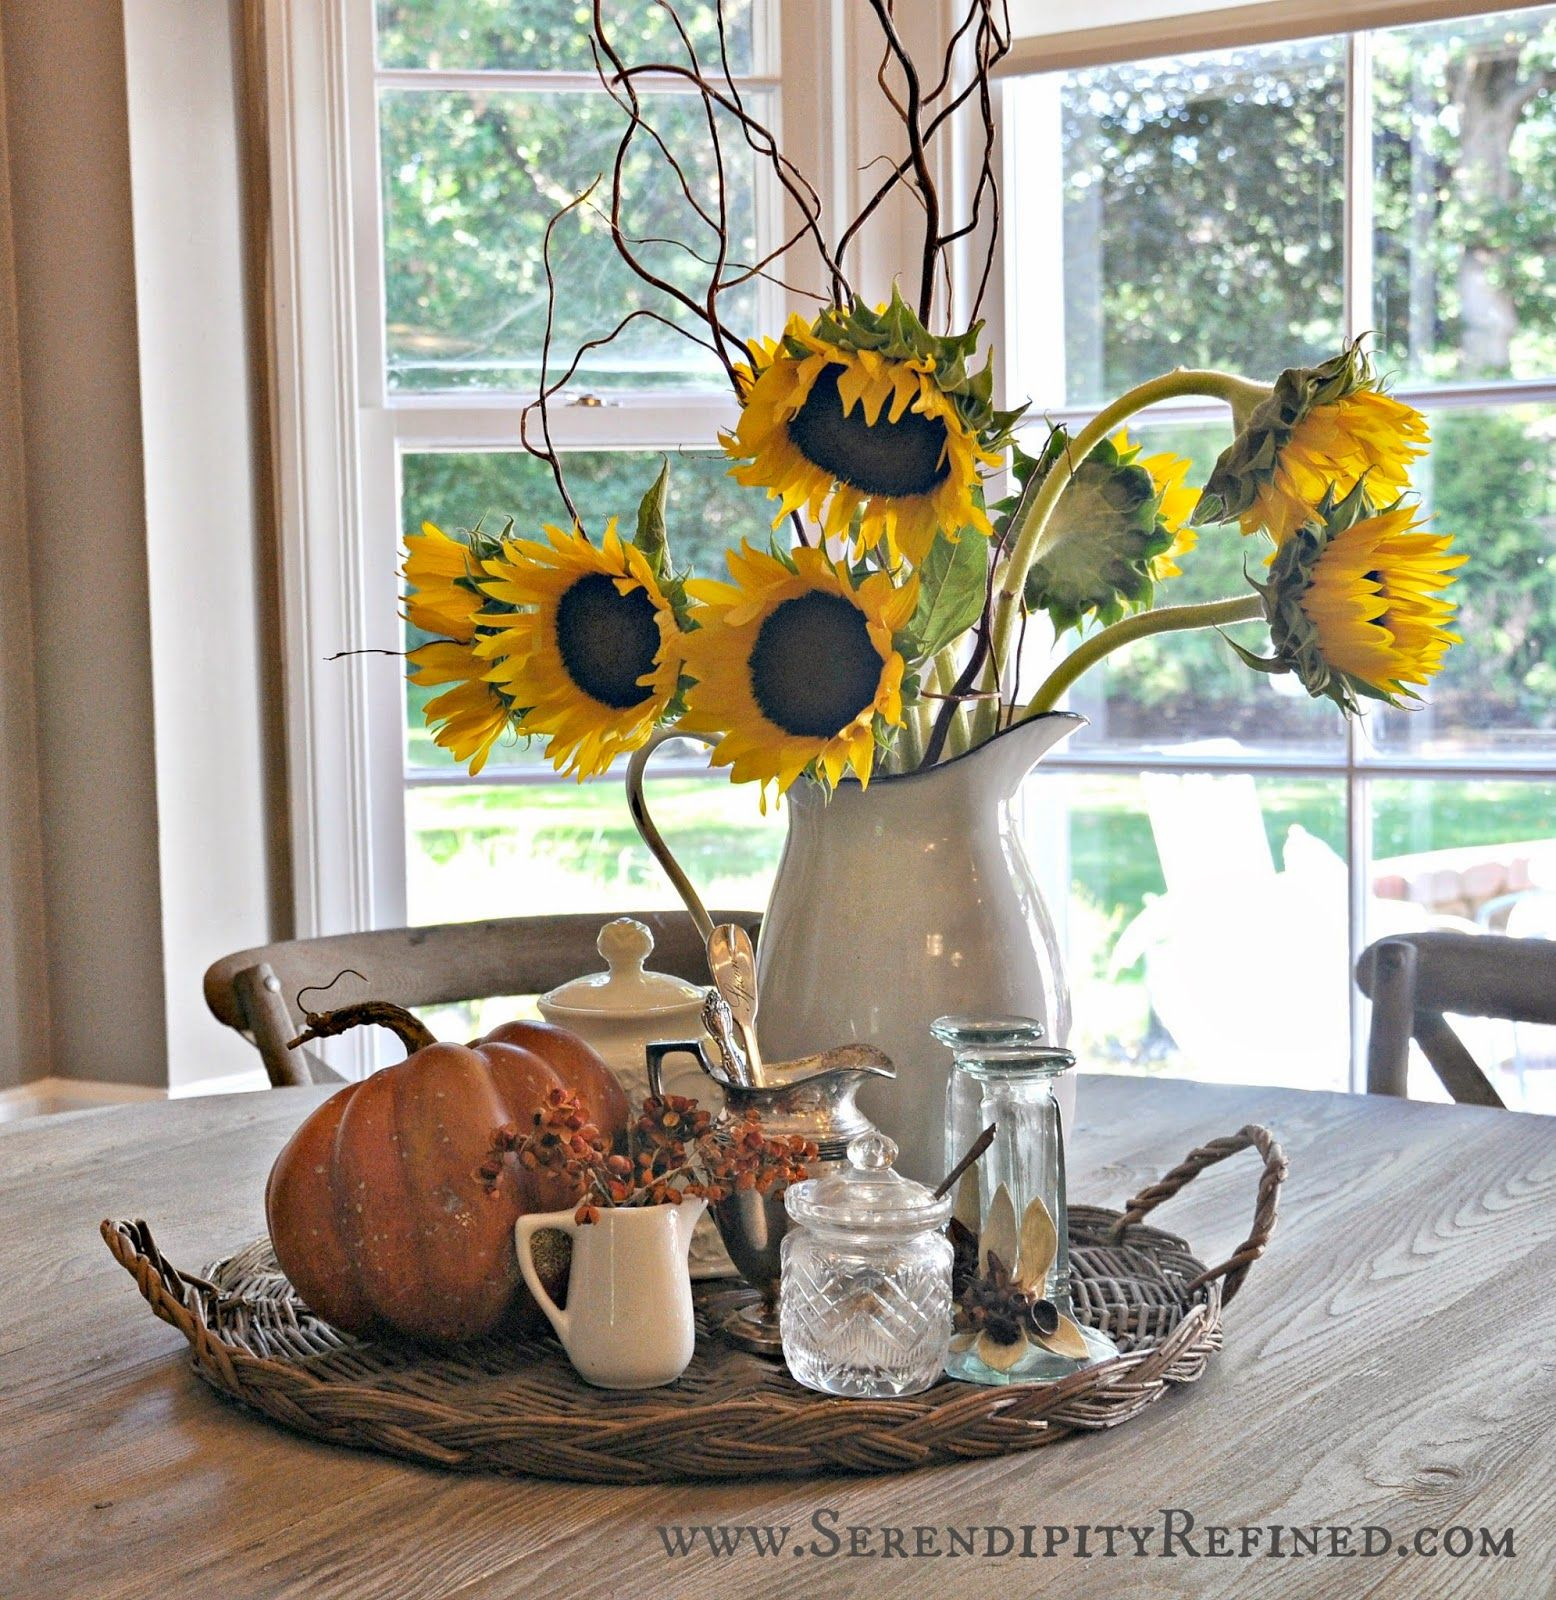 For Kitchen Table Centerpieces Serendipity Refined Inside The French Farmhouse Fall Decorating